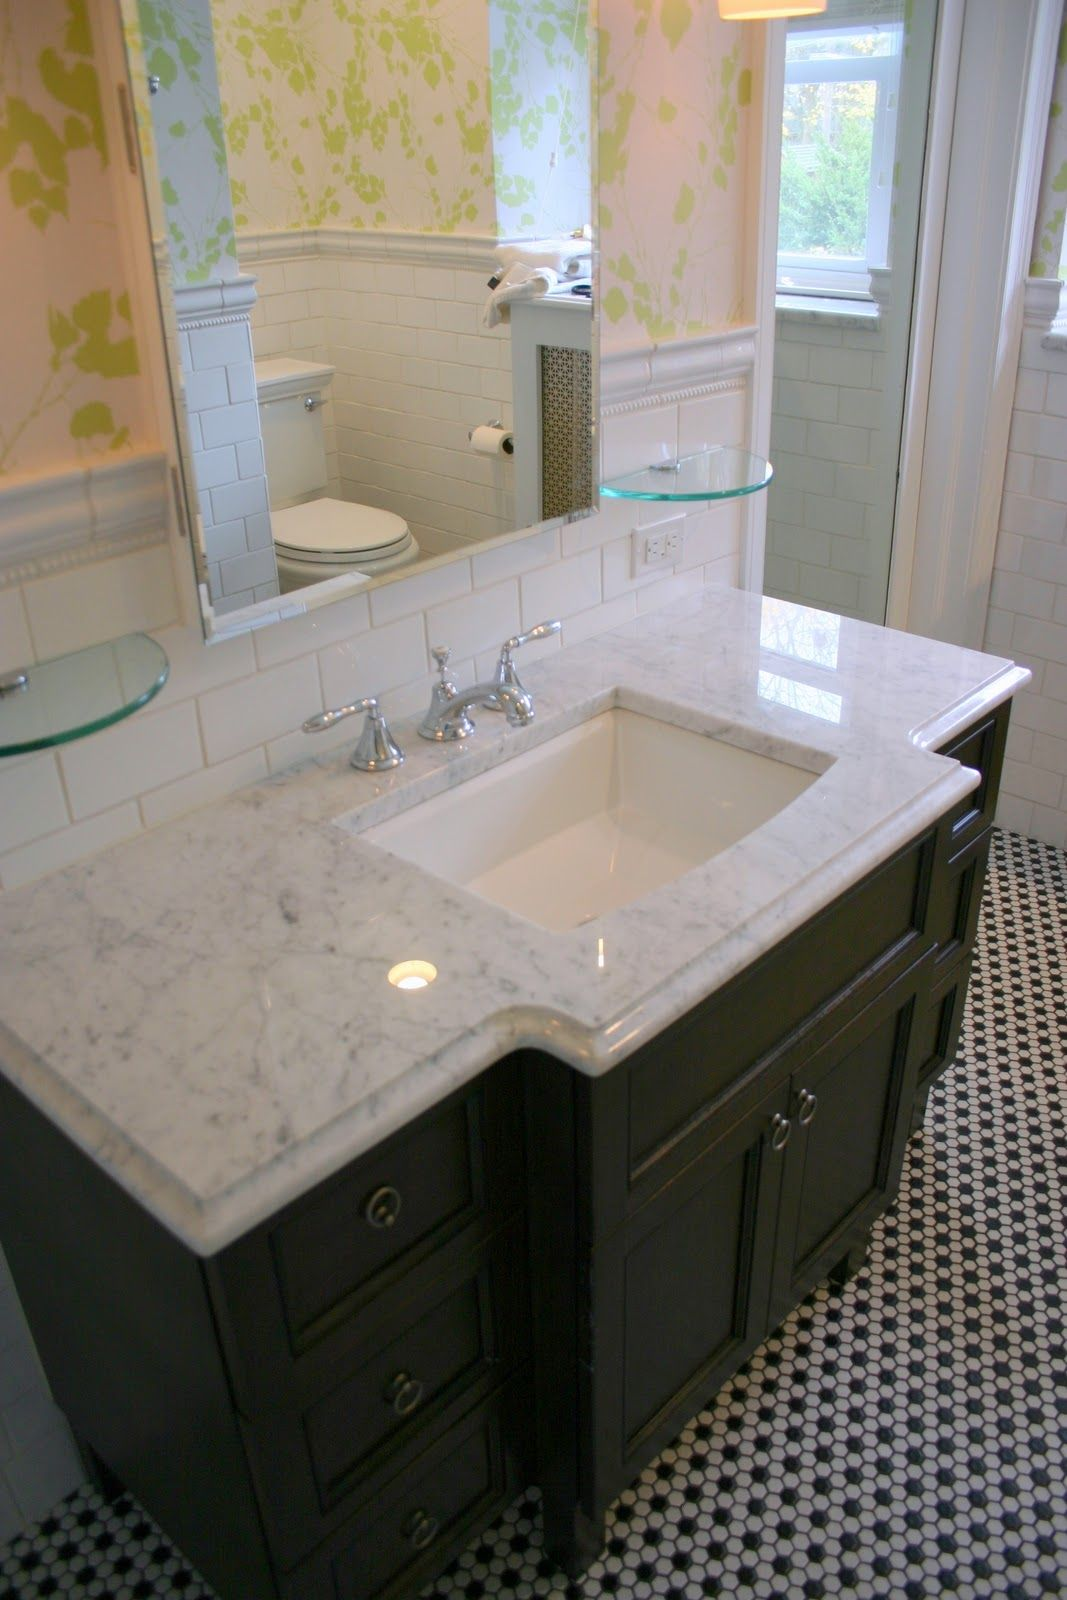 Small Bathroom Hexagon Floor Tile Ideas Bathroom Marble Bathroom - Small bathroom vanities with tops for bathroom decor ideas